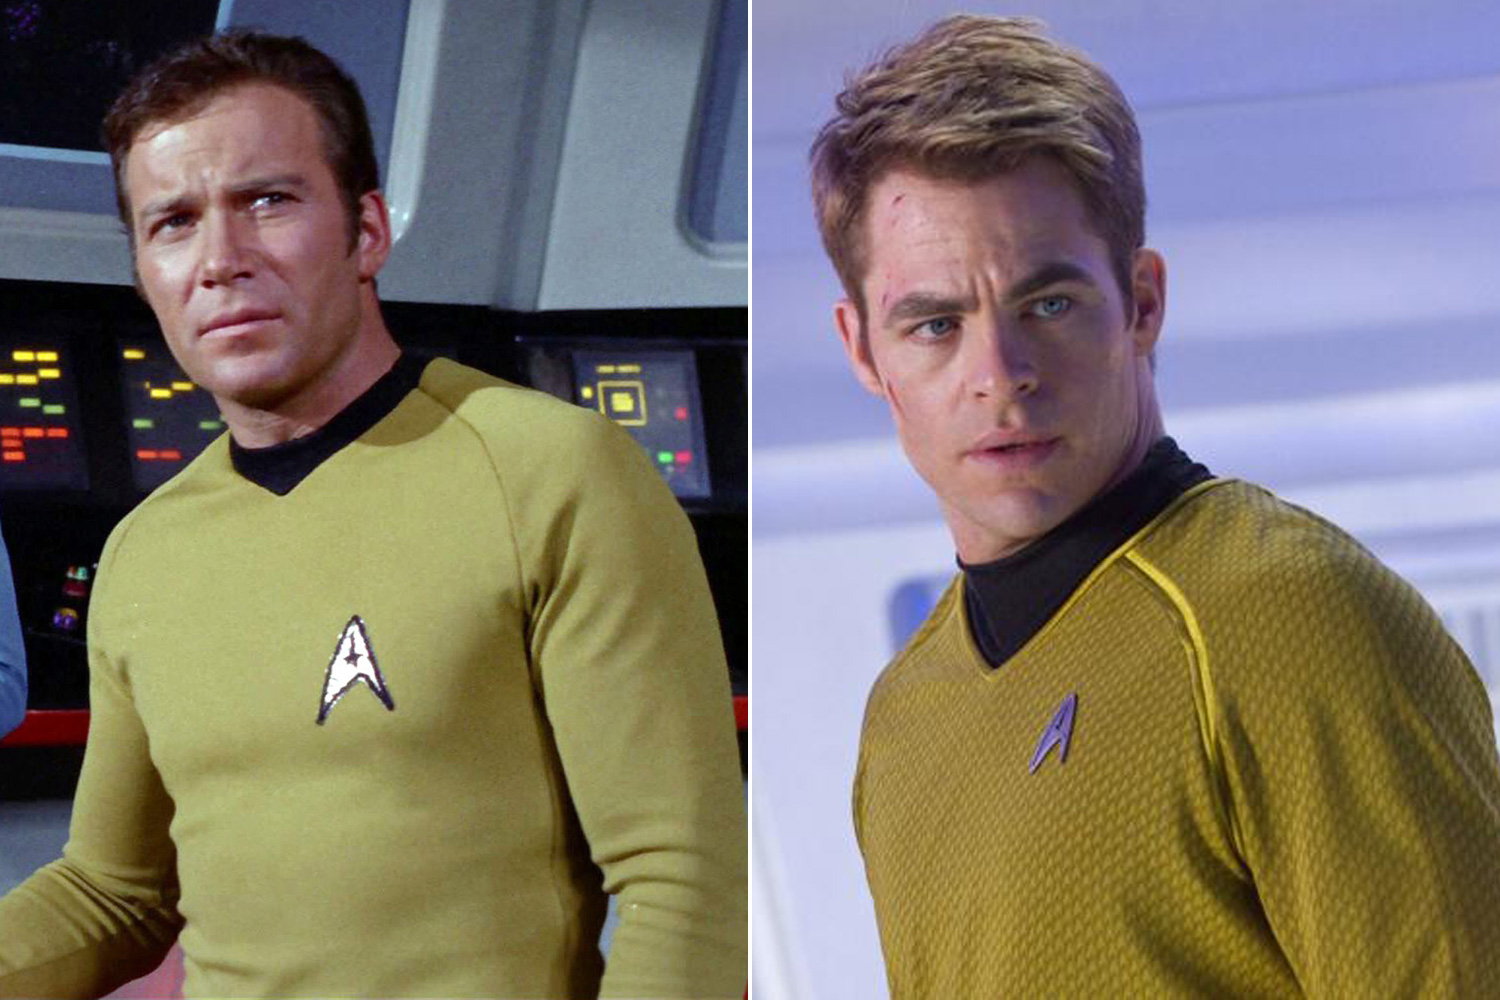 The original <i>Star Trek</i> television series was created and by Gene Roddenberry in 1966 and starred William Shatner as Captain James Tiberius Kirk of the USS Enterprise. The iconic sci-fi franchise was rebooted for the big screen in the 2009 film <i>Star Trek</i> and starred Chris Pine as the new Captain Kirk.